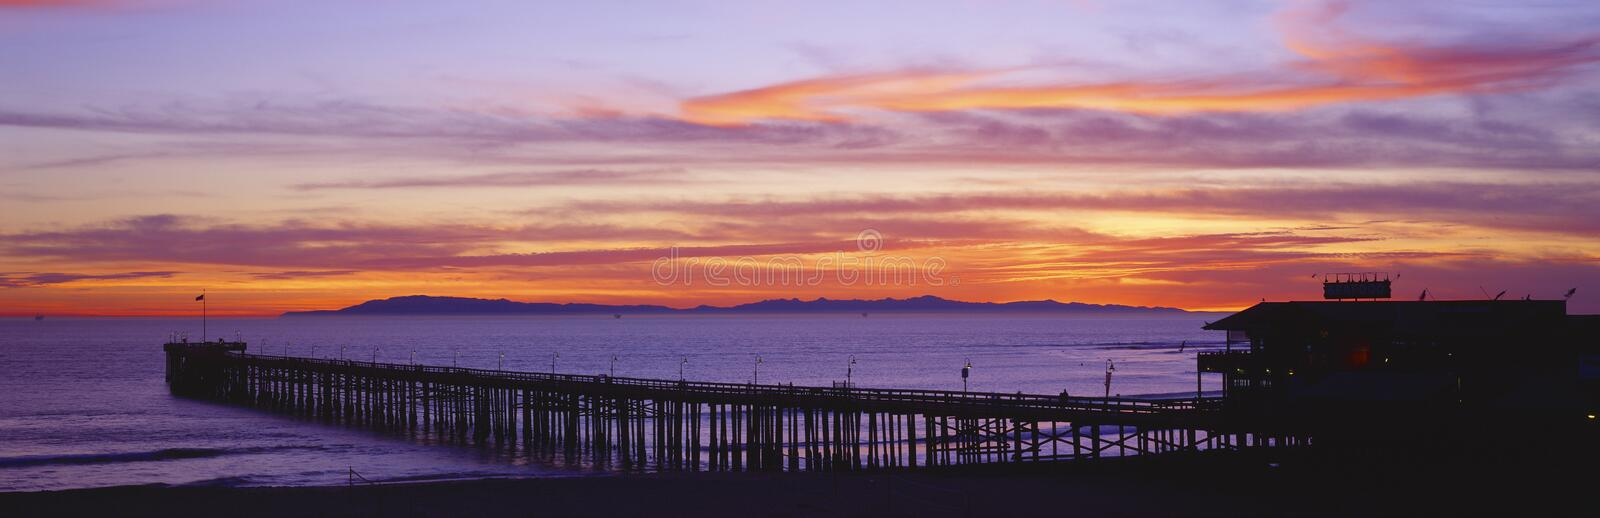 Sunset over Ventura Pier Channel Islands and Pacific Ocean, Ventura, California stock photography